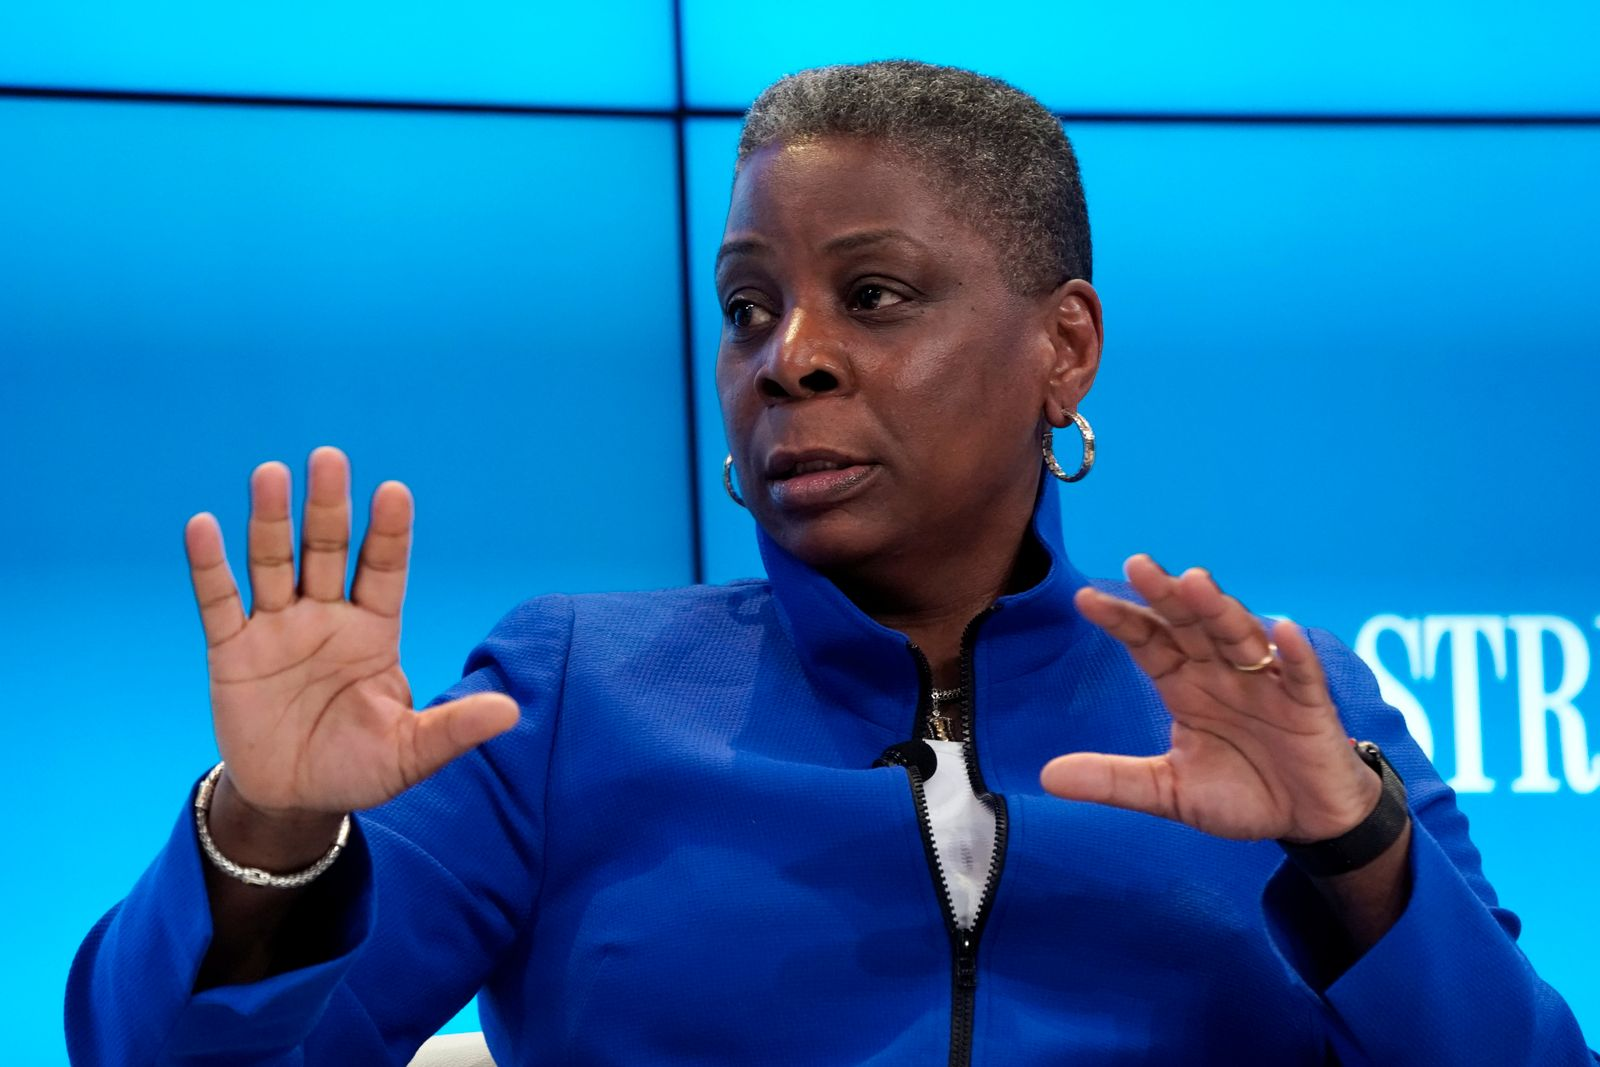 Ursula Burns, Chairman of the Supervisory Boar of VEON, attends the World Economic Forum (WEF) annual meeting in Davos